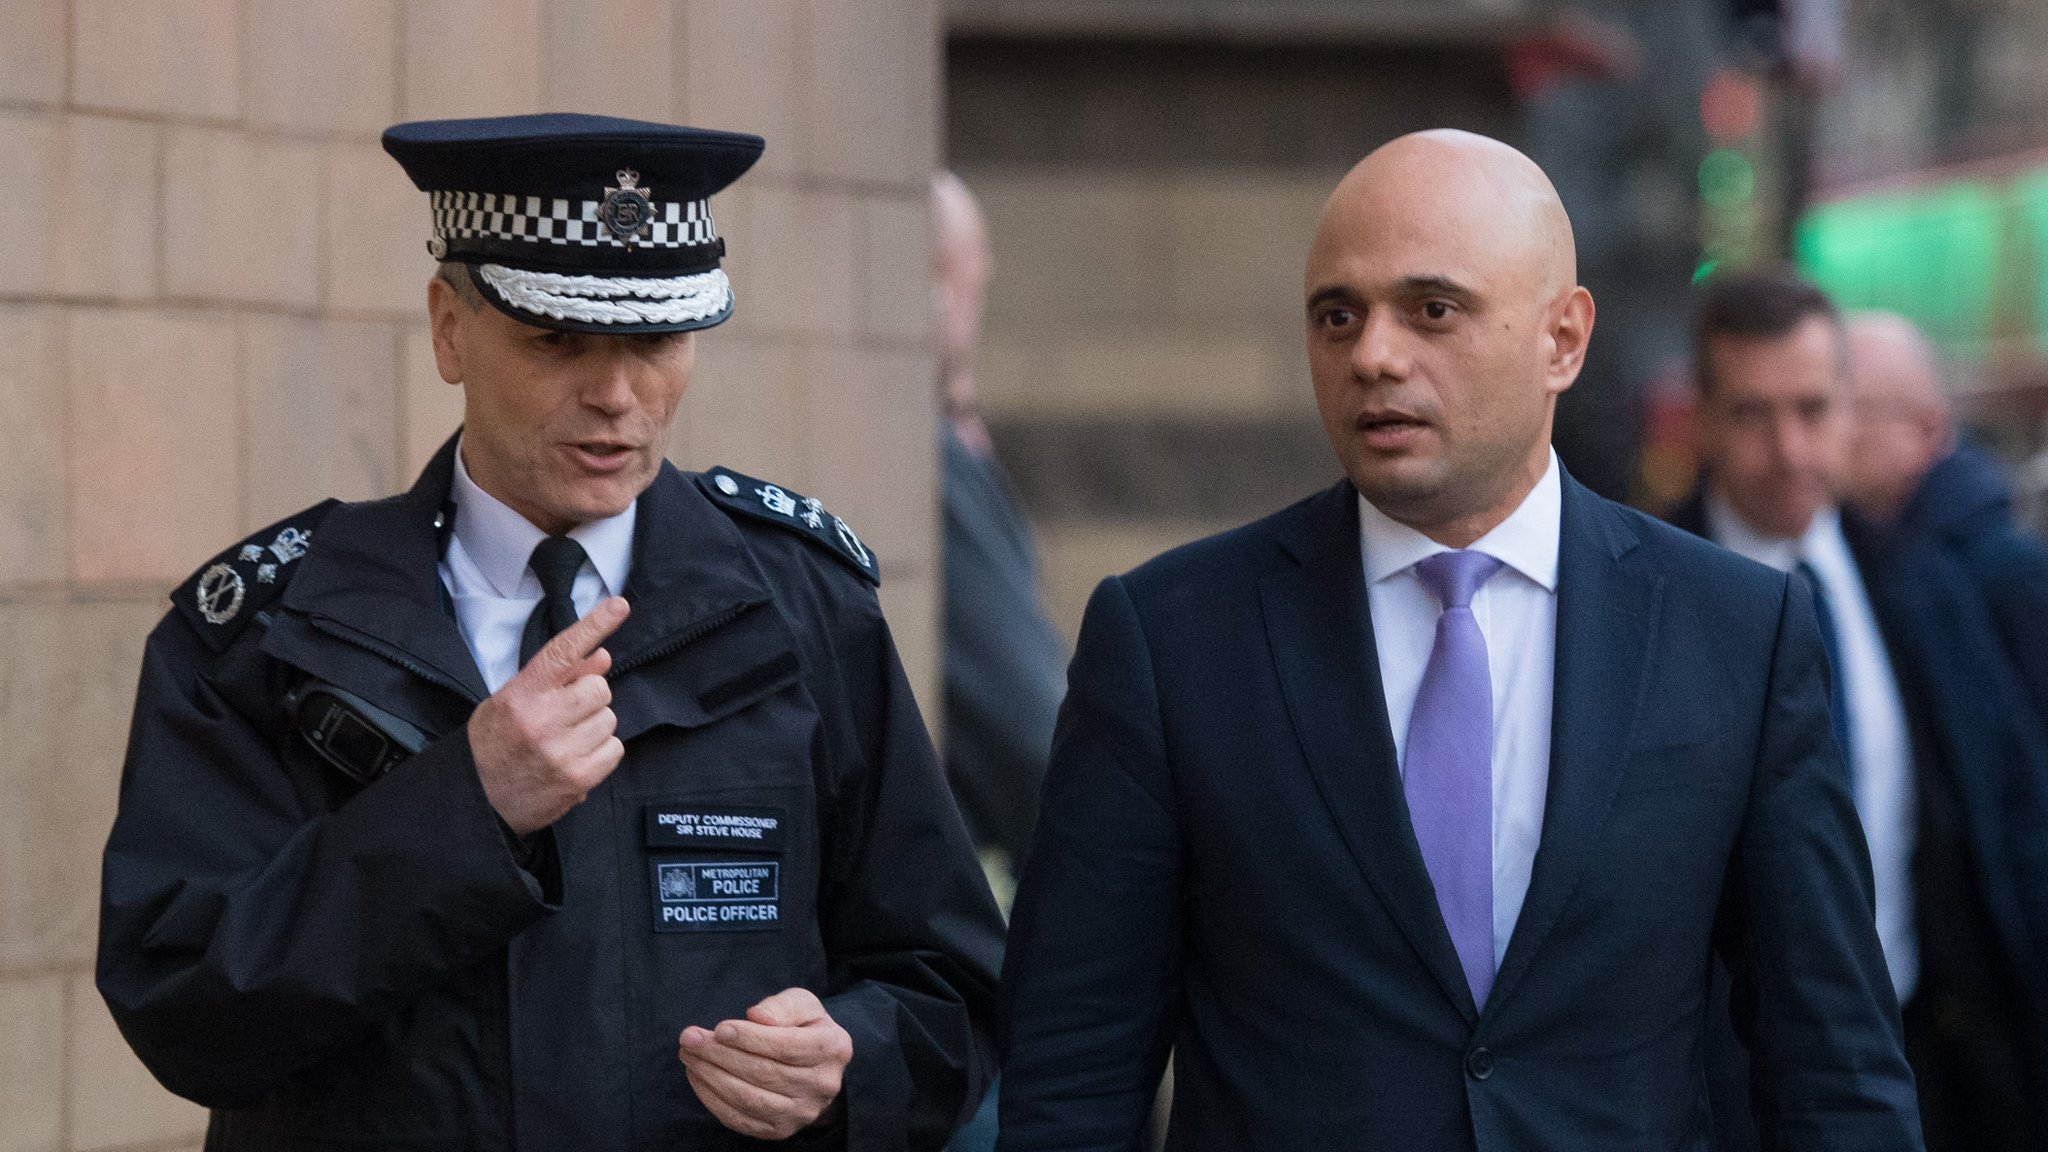 Sajid Javid Metropolitan Police Deputy Commissioner Steve House launching enhanced stop and search powers at Angel Underground station